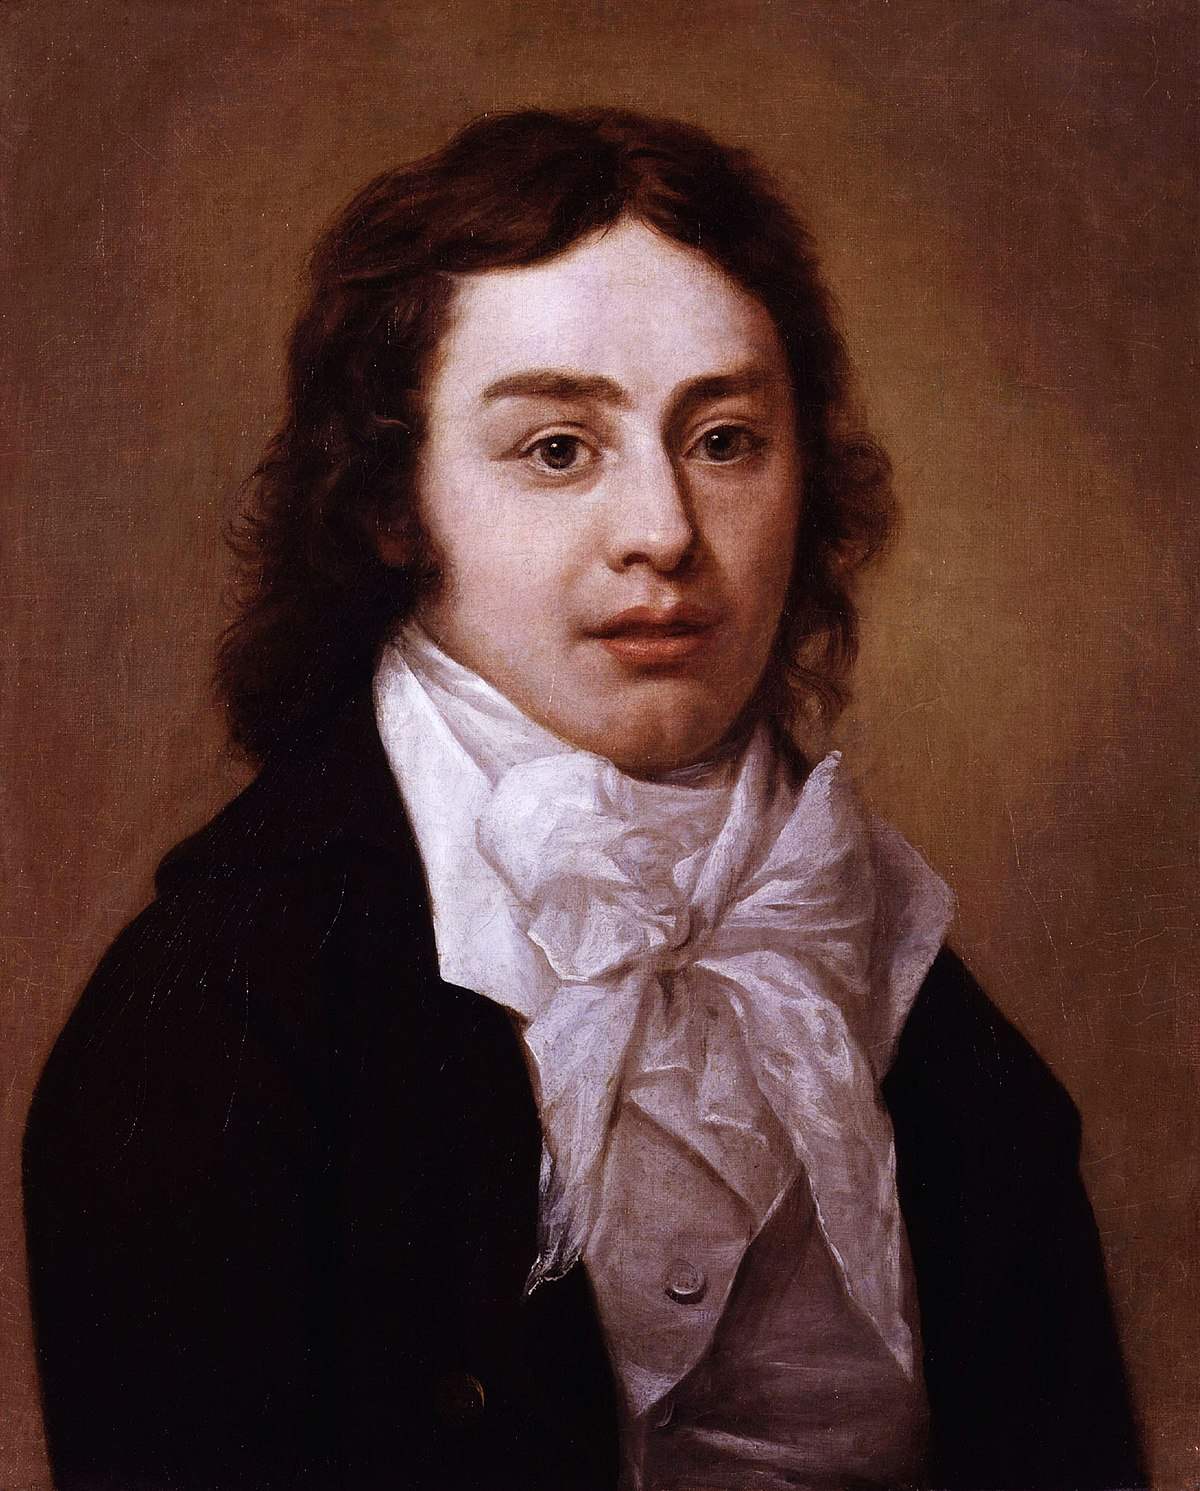 Samuel taylor coleridge wikipedia biocorpaavc Images